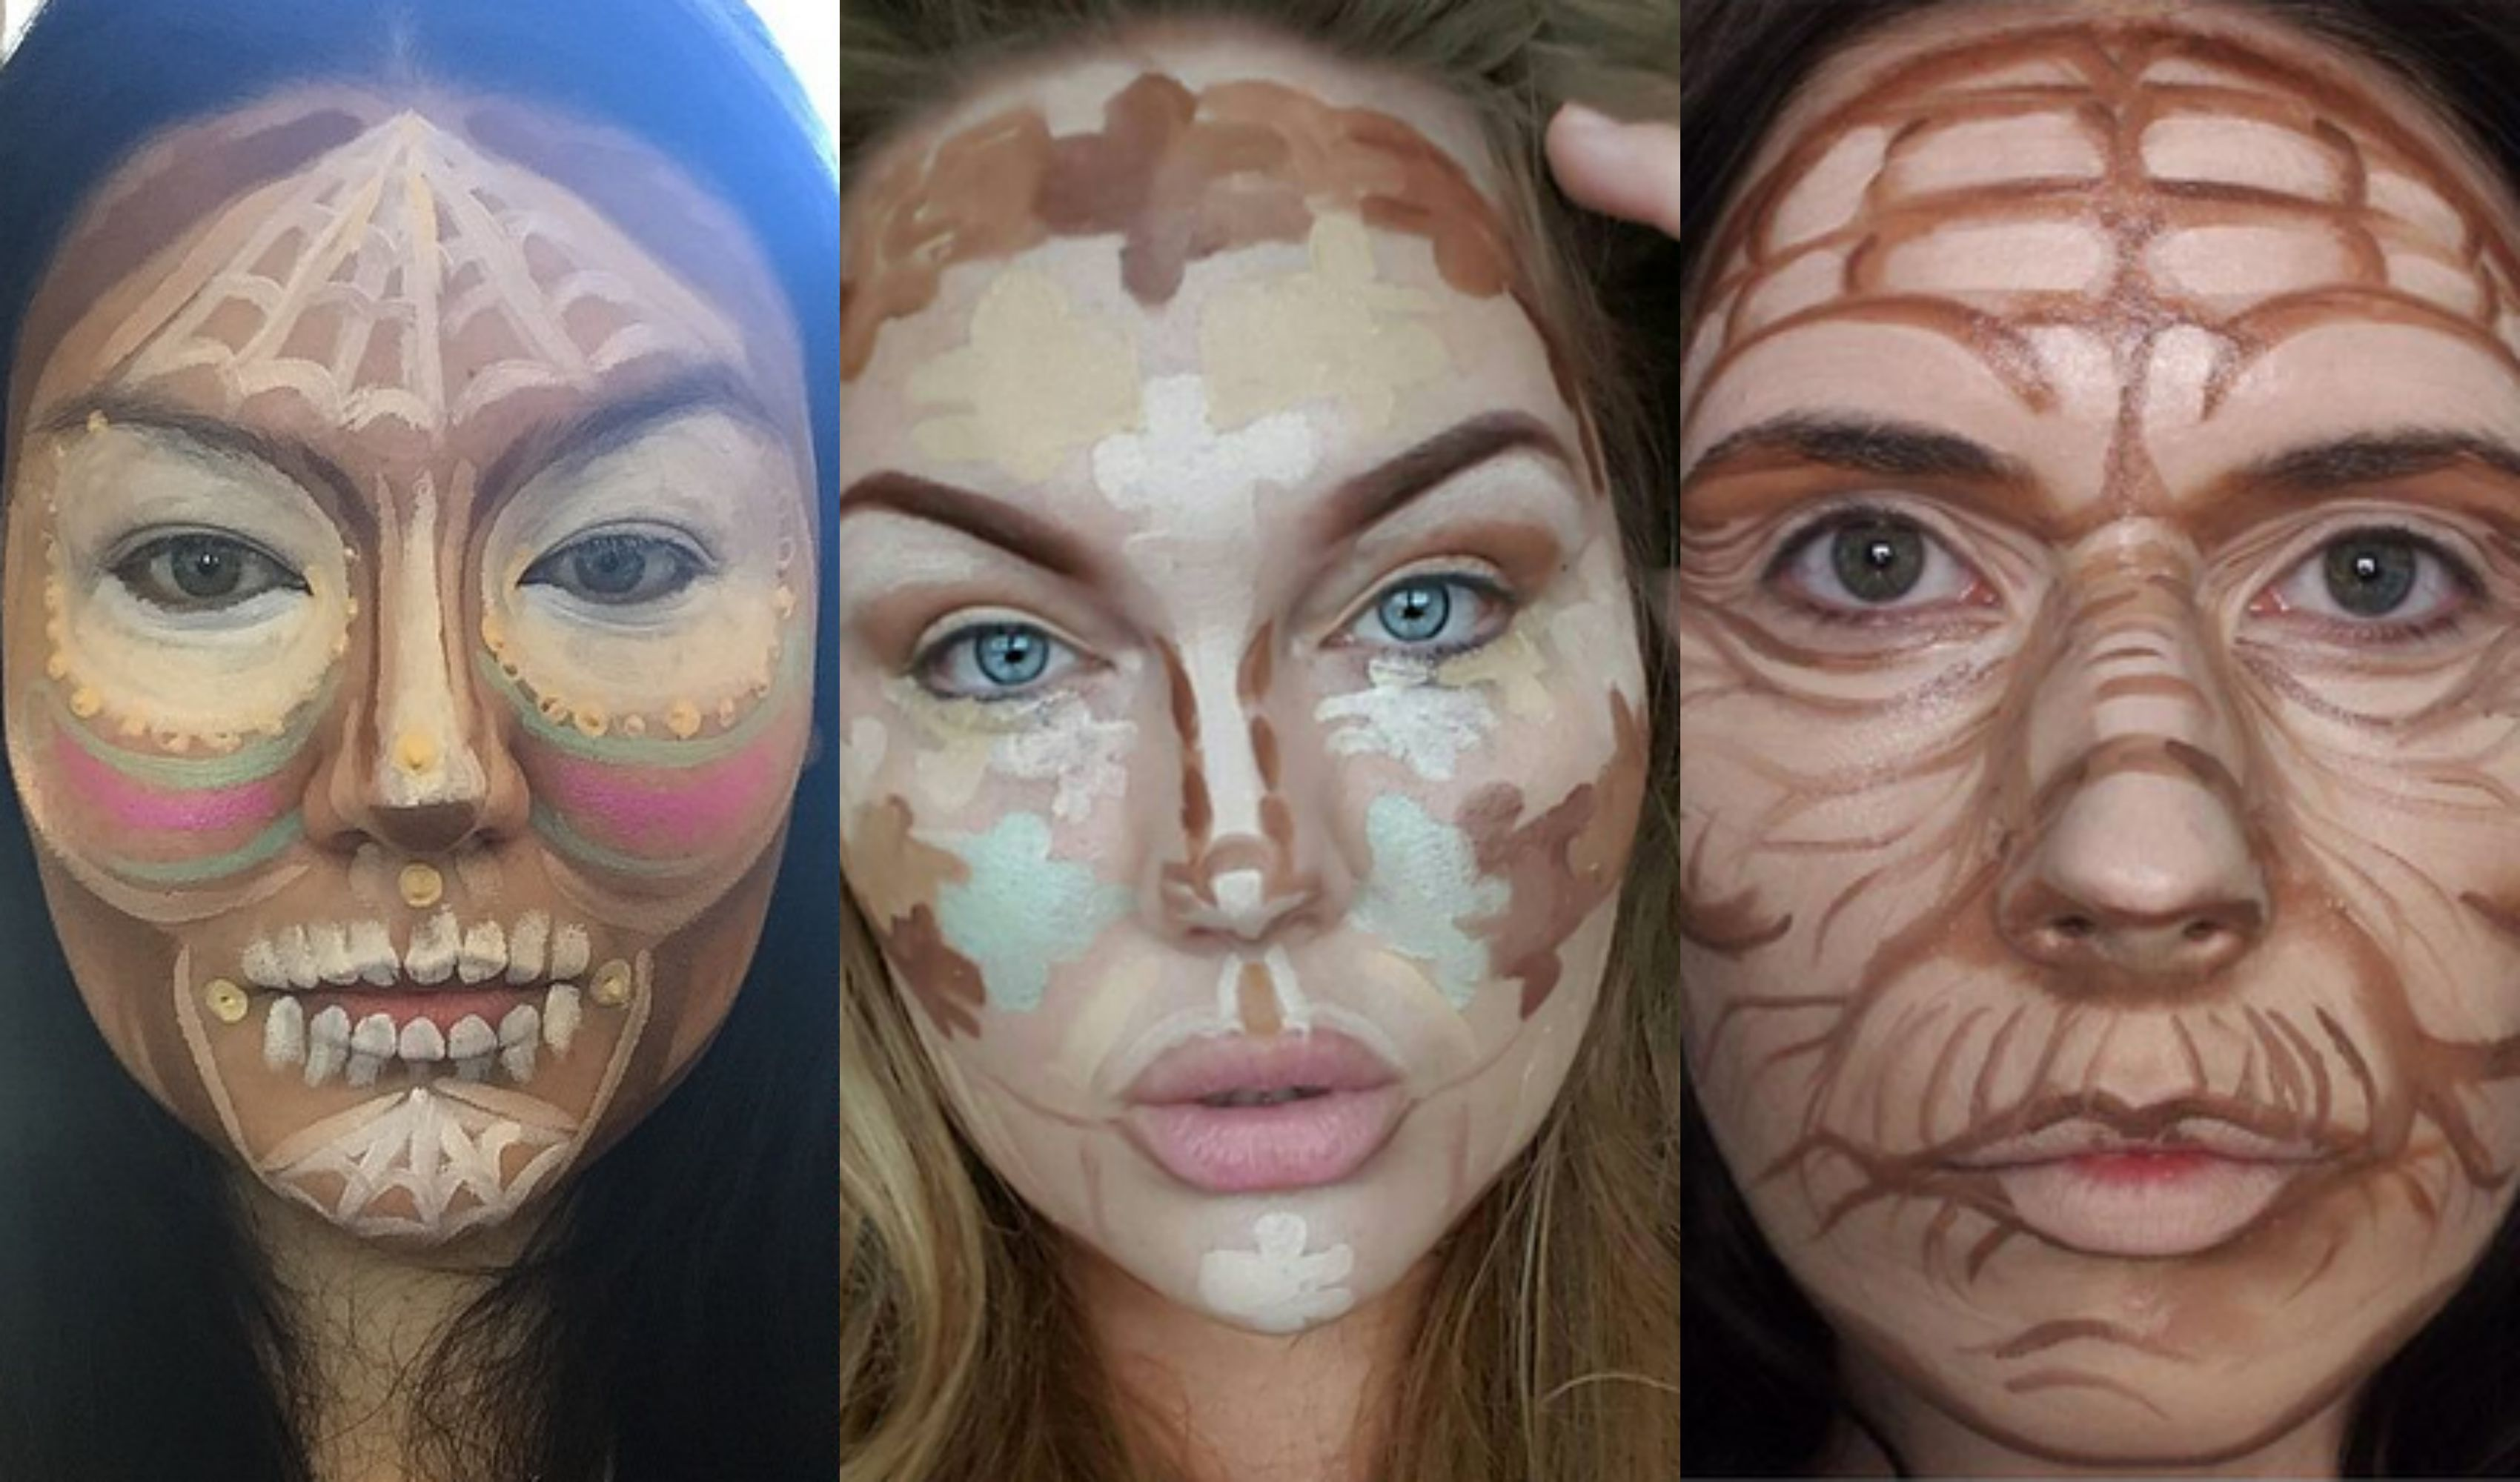 5 Weird Beauty Contouring Videos